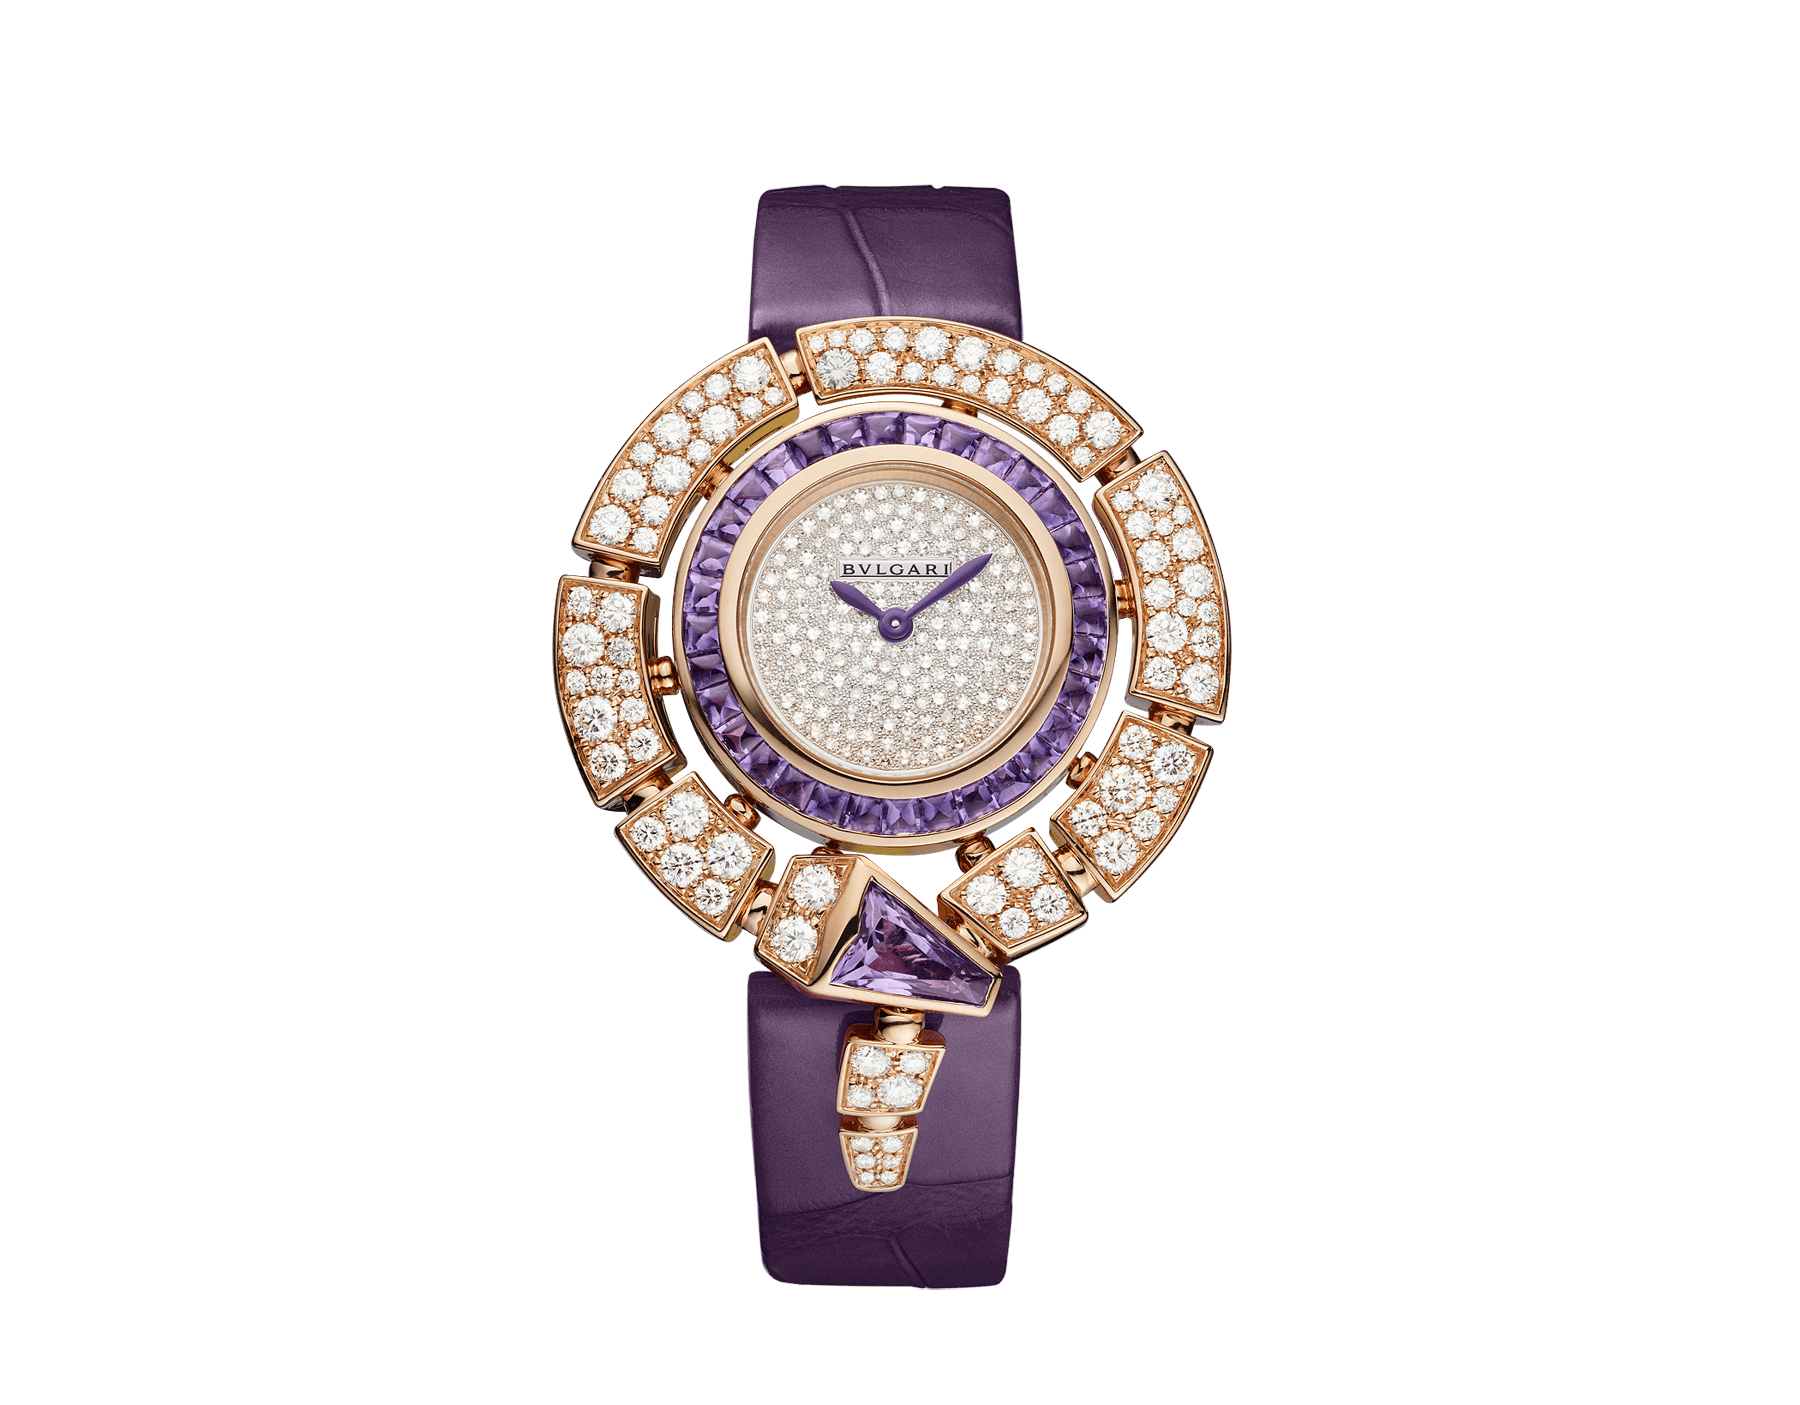 Serpenti Incantati watch with 18 kt rose gold case set with round brilliant-cut diamonds and a fancy-shaped amethyst, 18 kt rose gold bezel set with buff-cut amethysts, snow pavé dial and purple alligator bracelet 103125 image 1